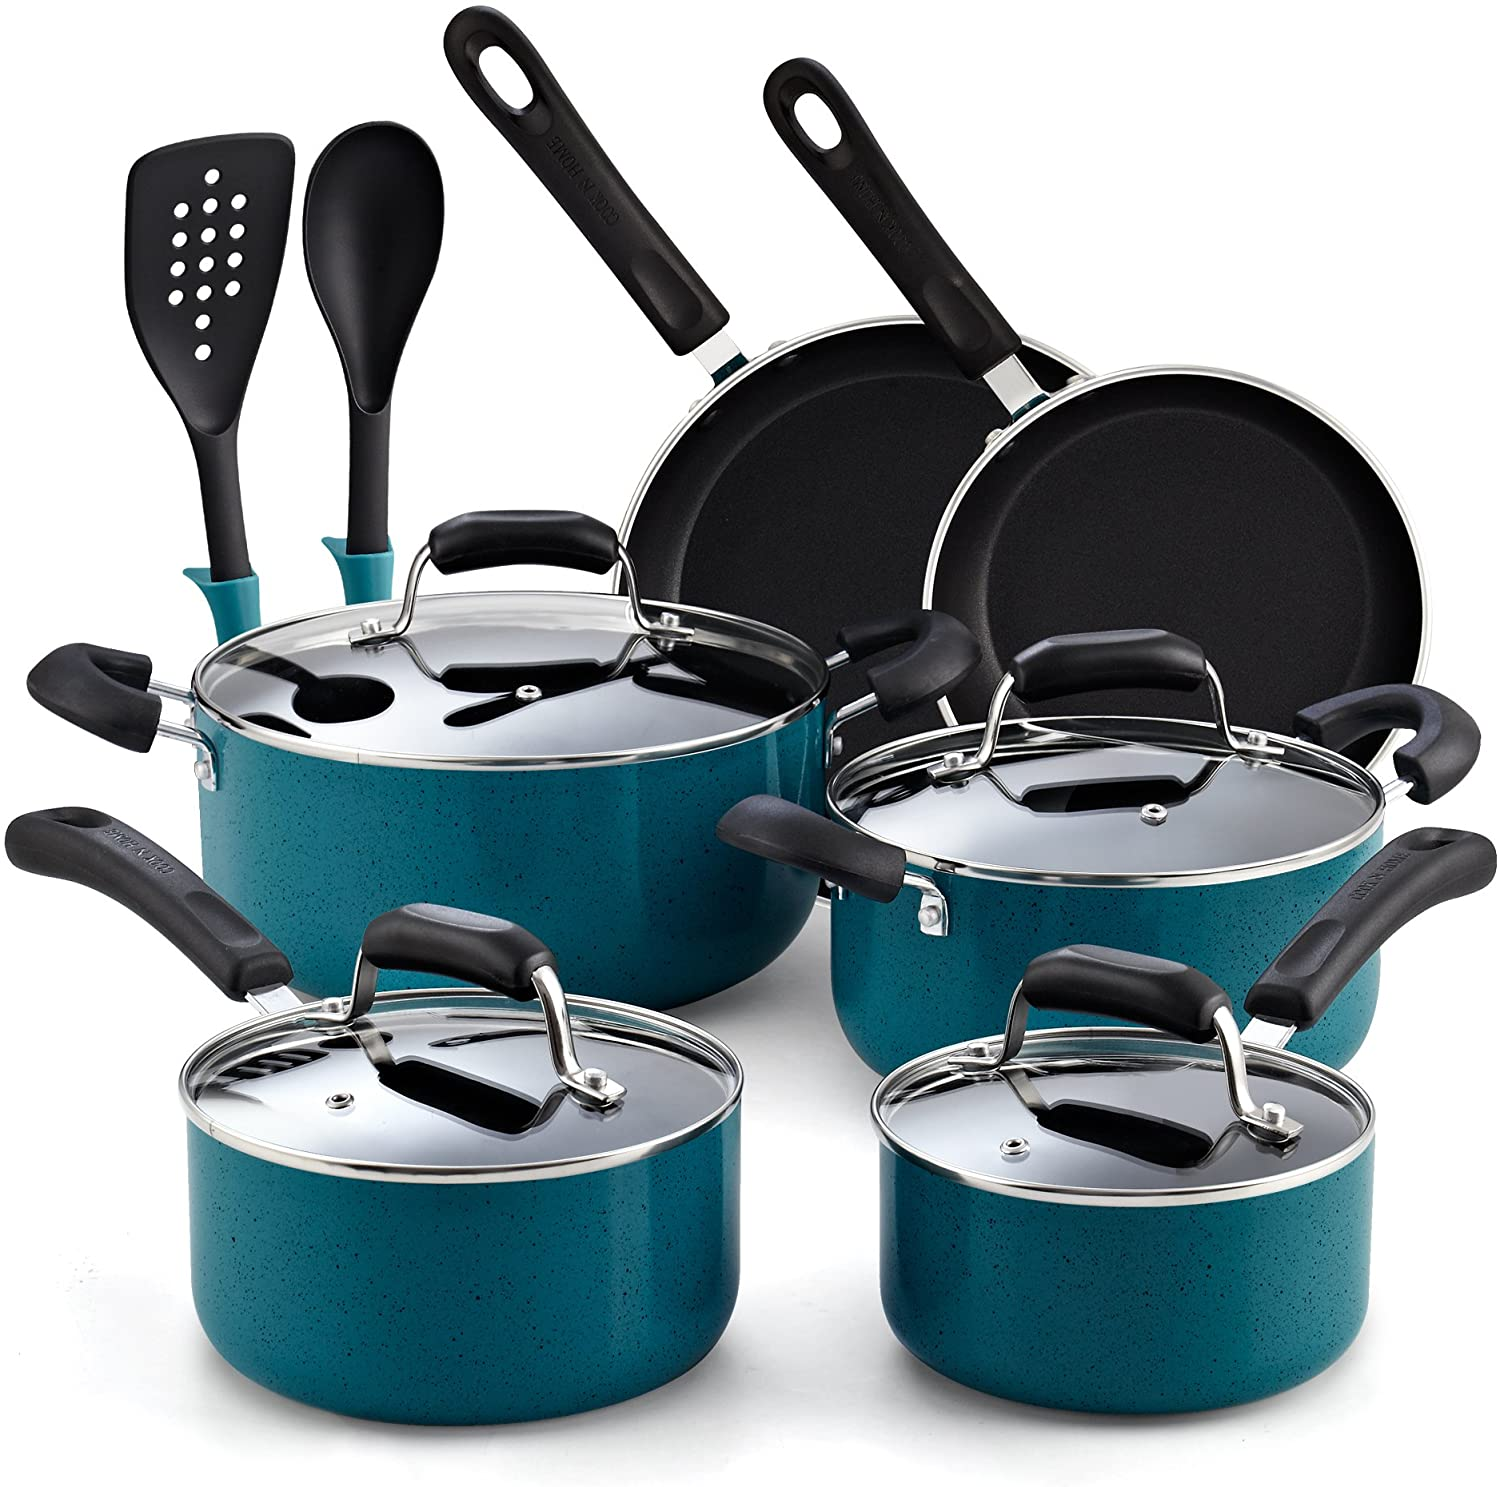 Cook N Home Nonstick Cookware Set Image